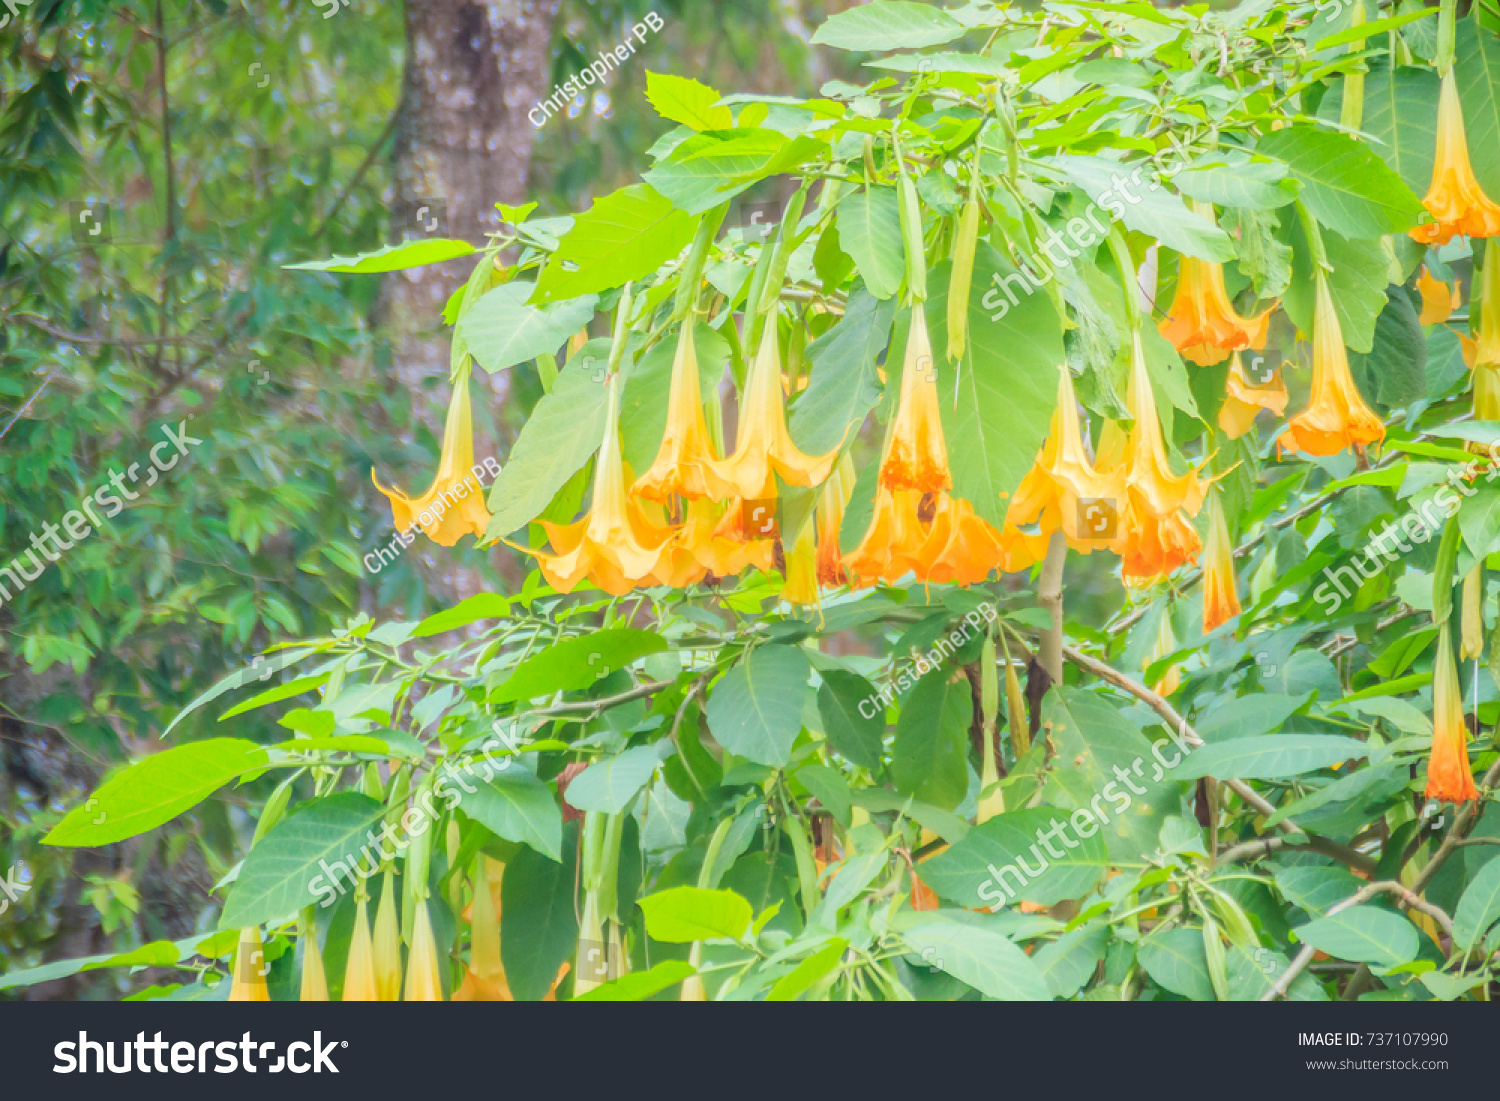 Yellow angels trumpet flowers brugmansia suaveolens stock photo yellow angels trumpet flowers brugmansia suaveolens stock photo royalty free 737107990 shutterstock mightylinksfo